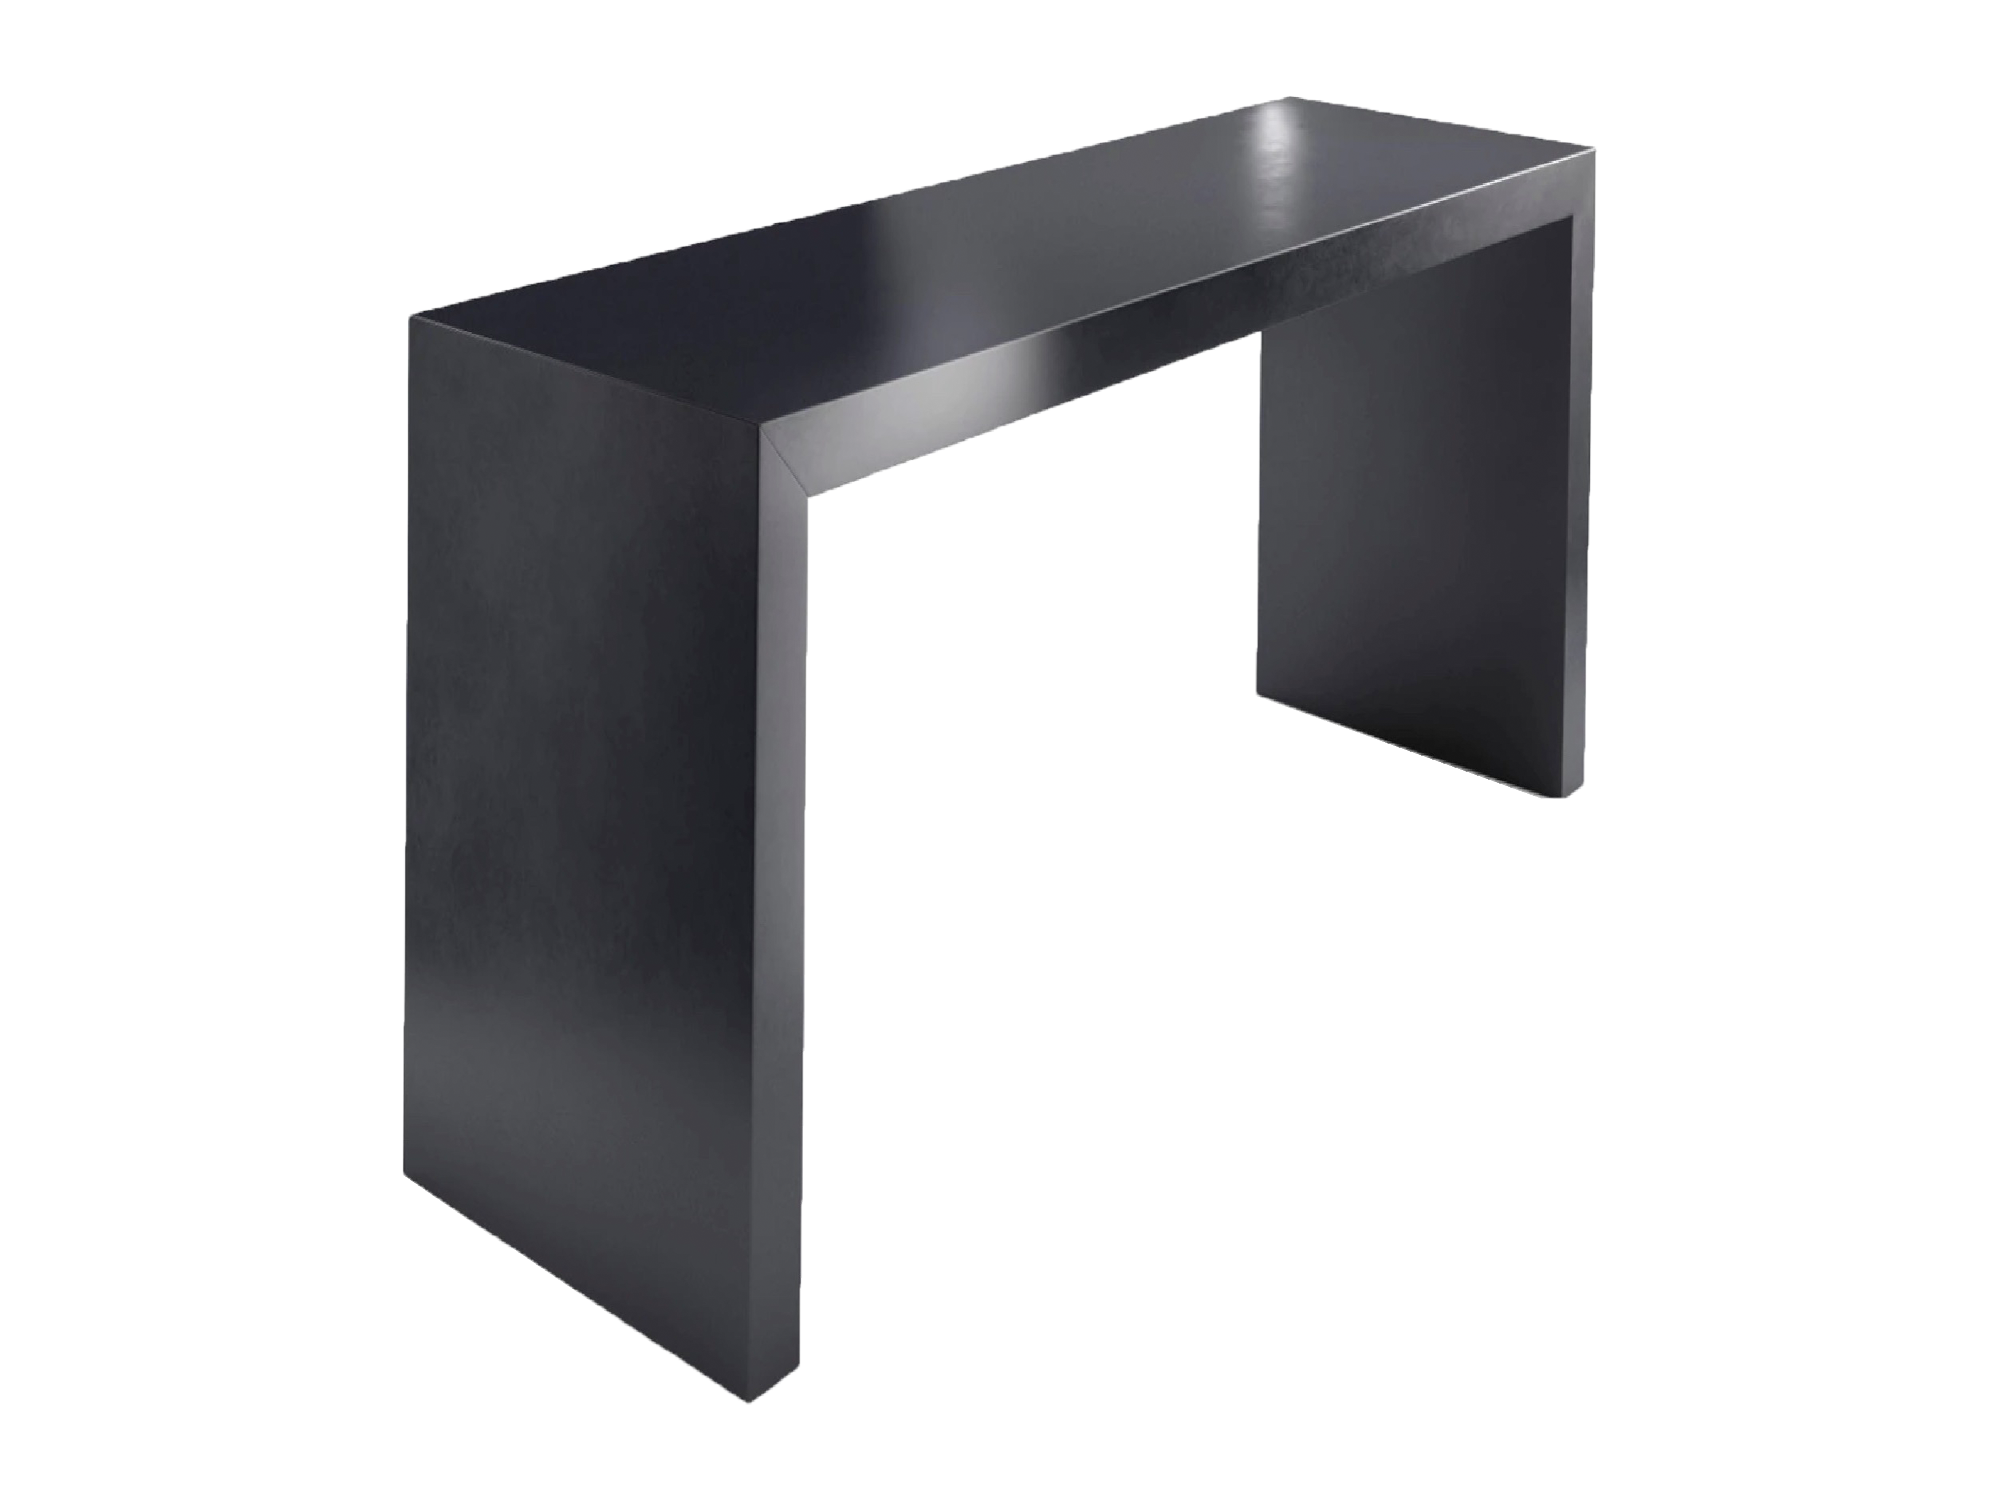 PEACHTREE COMMUNAL TABLE - BLACK